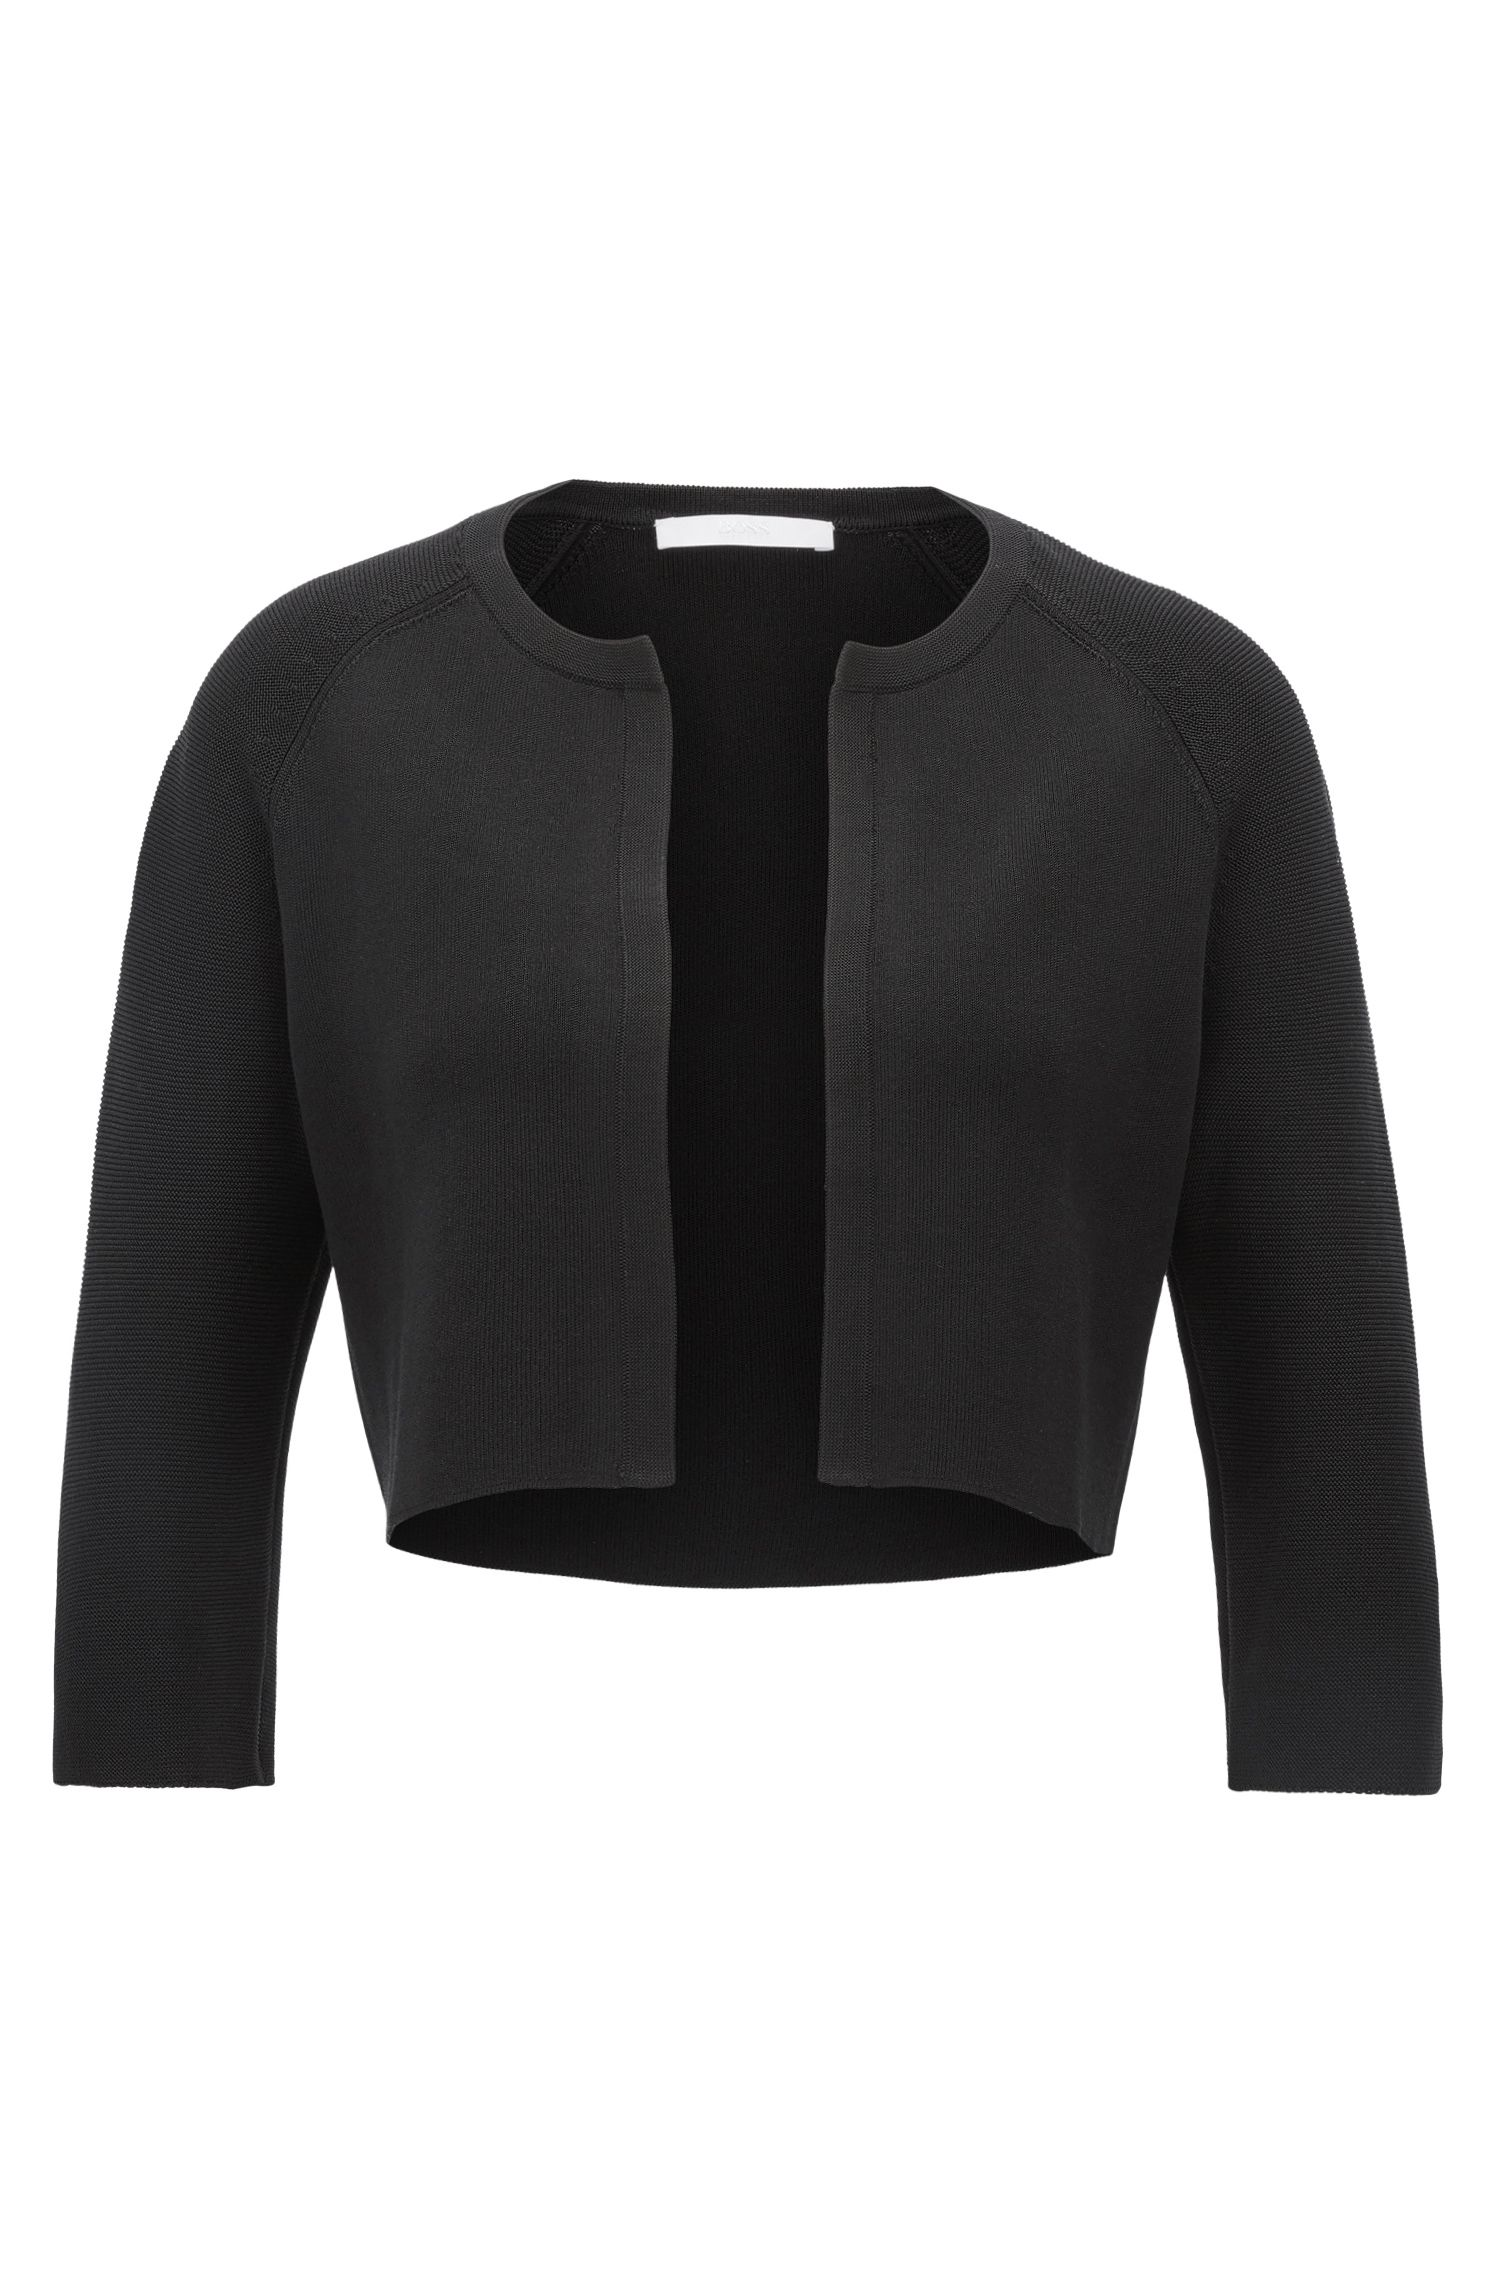 Edge-to-edge knitted jacket